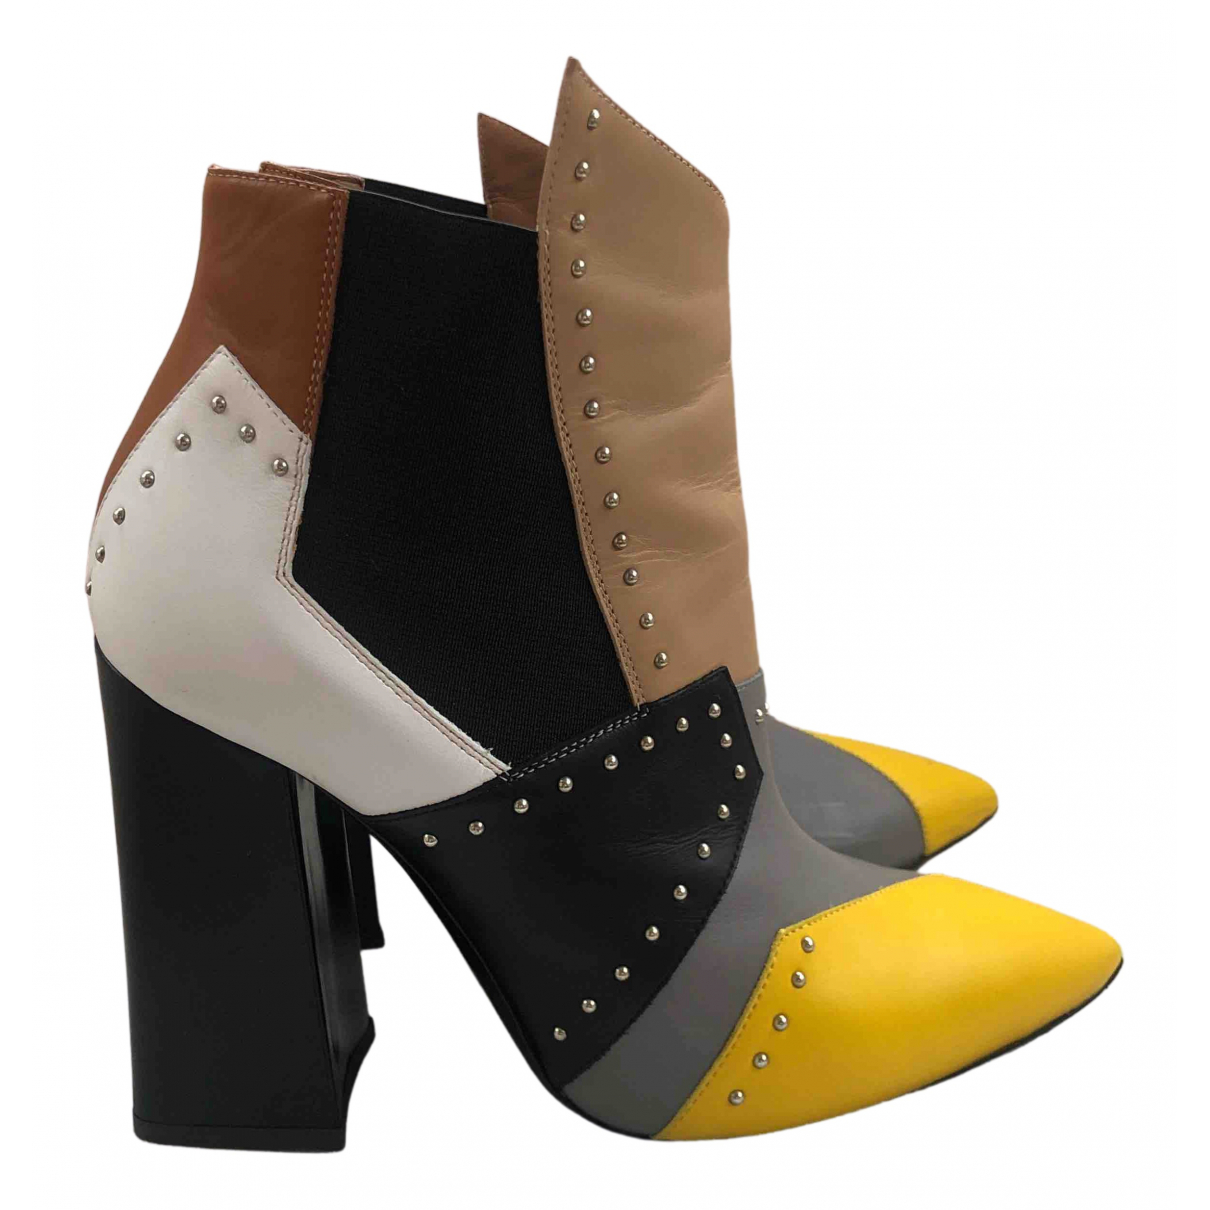 Pollini N Multicolour Leather Ankle boots for Women 36 EU